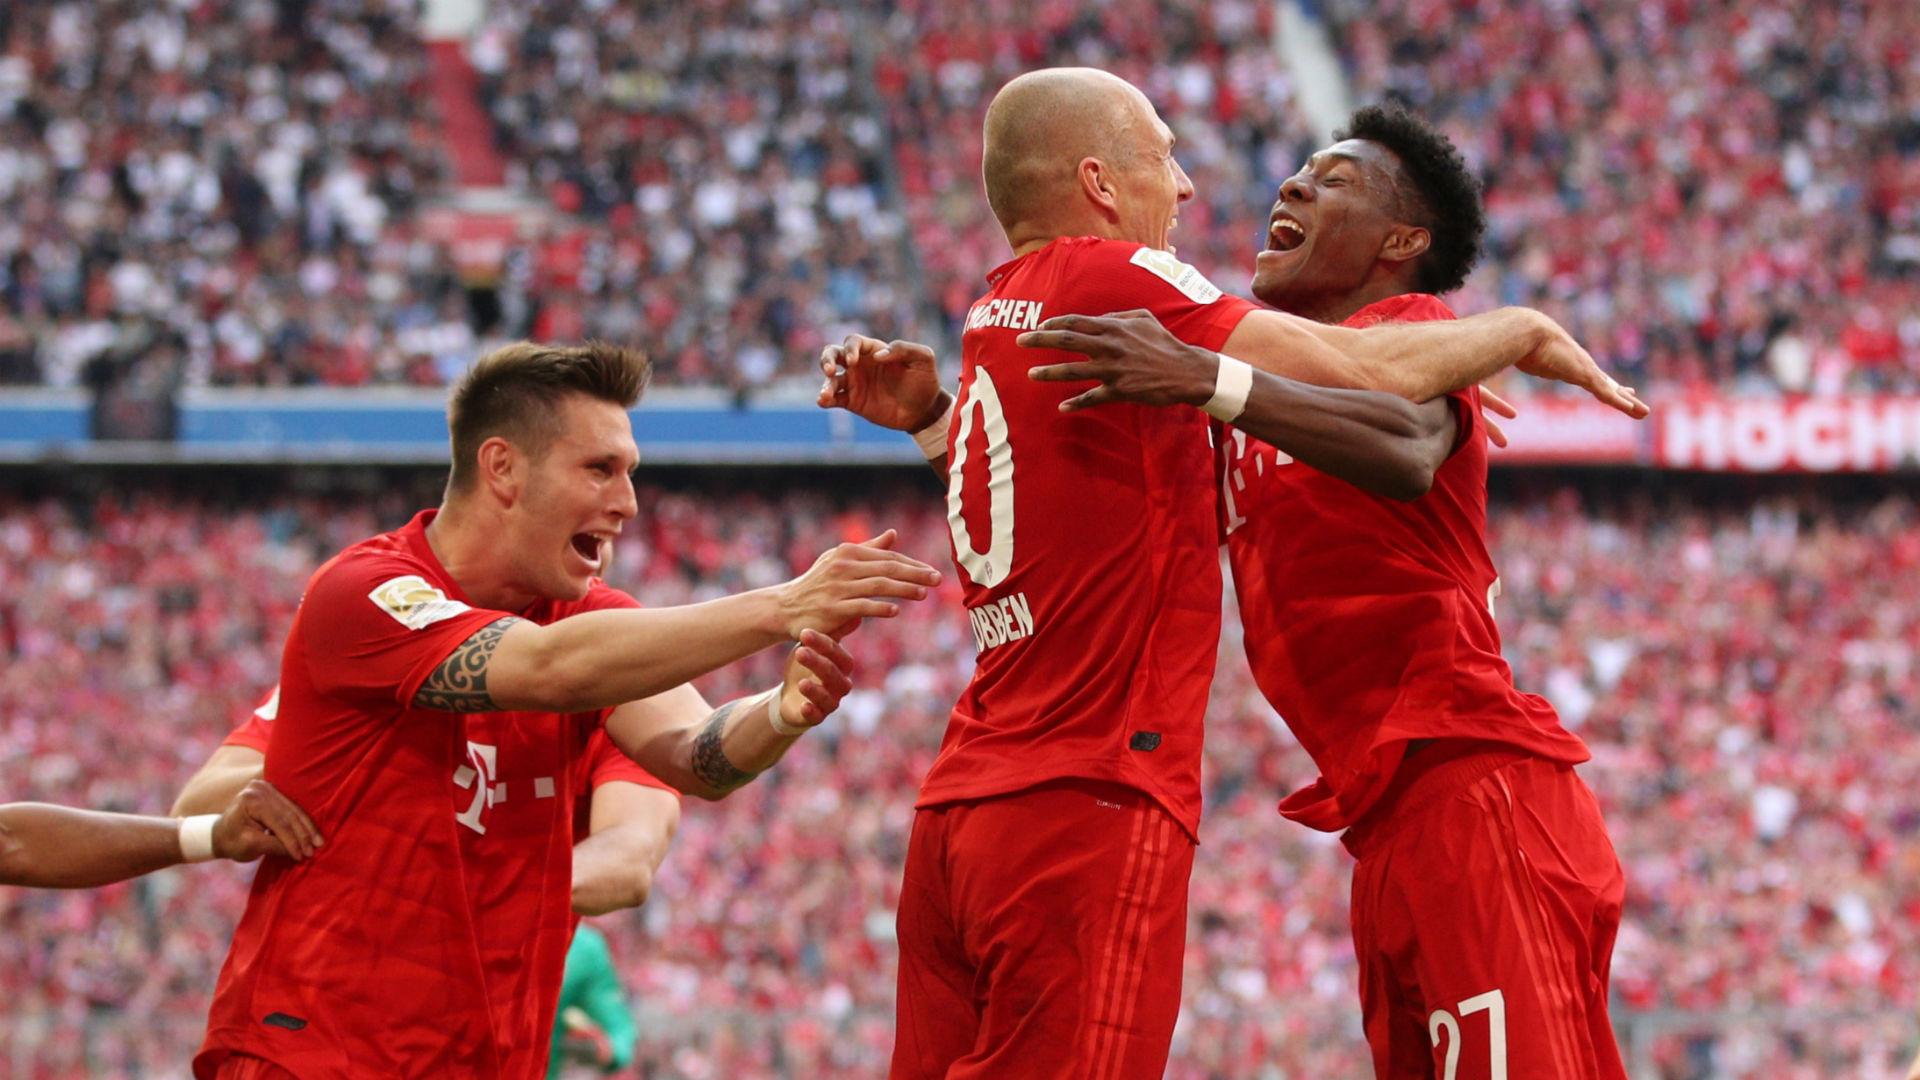 Bayern Munich crowned Bundesliga champion as Robben and Ribery bid farewell